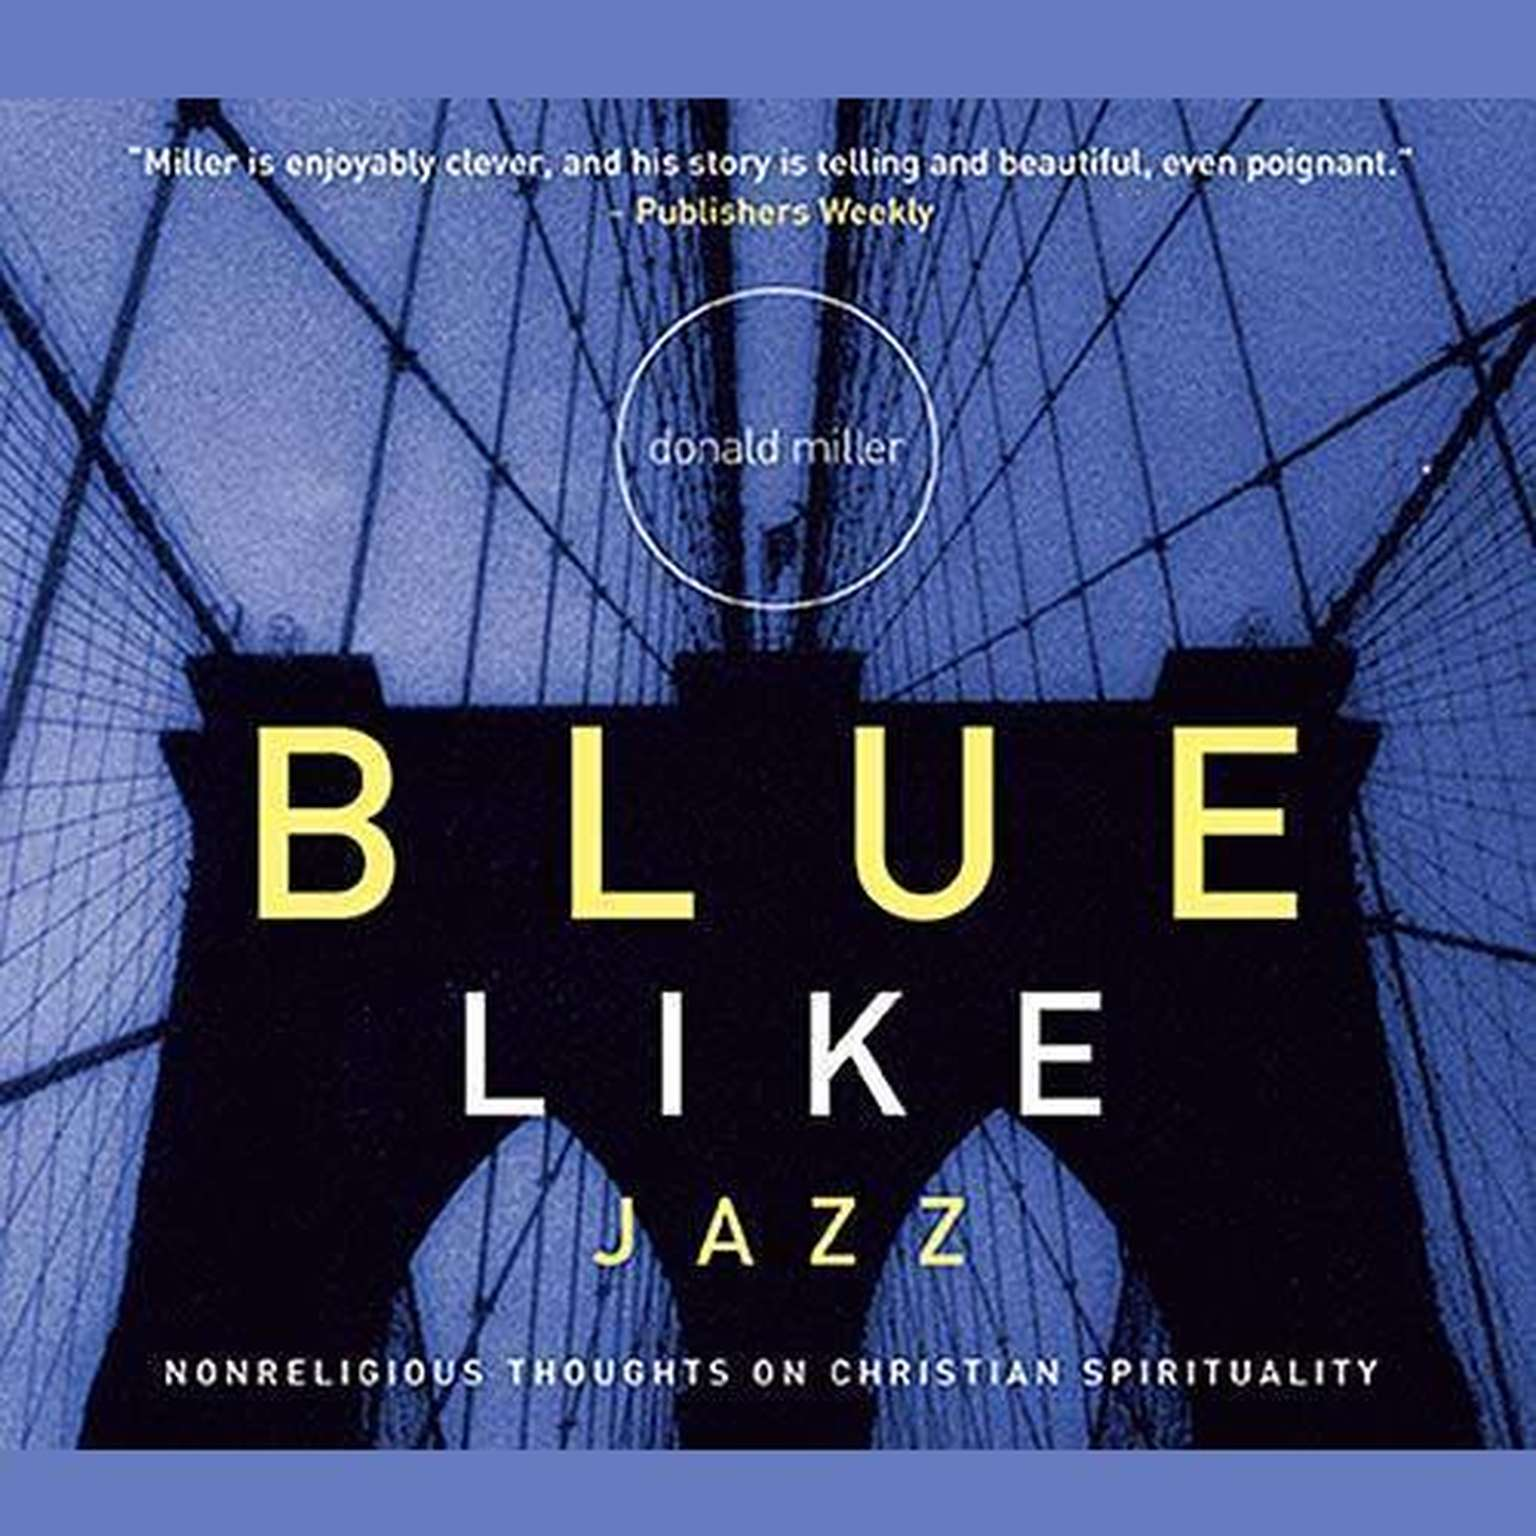 Printable Blue like Jazz: Nonreligious Thoughts on Christian Spirituality Audiobook Cover Art